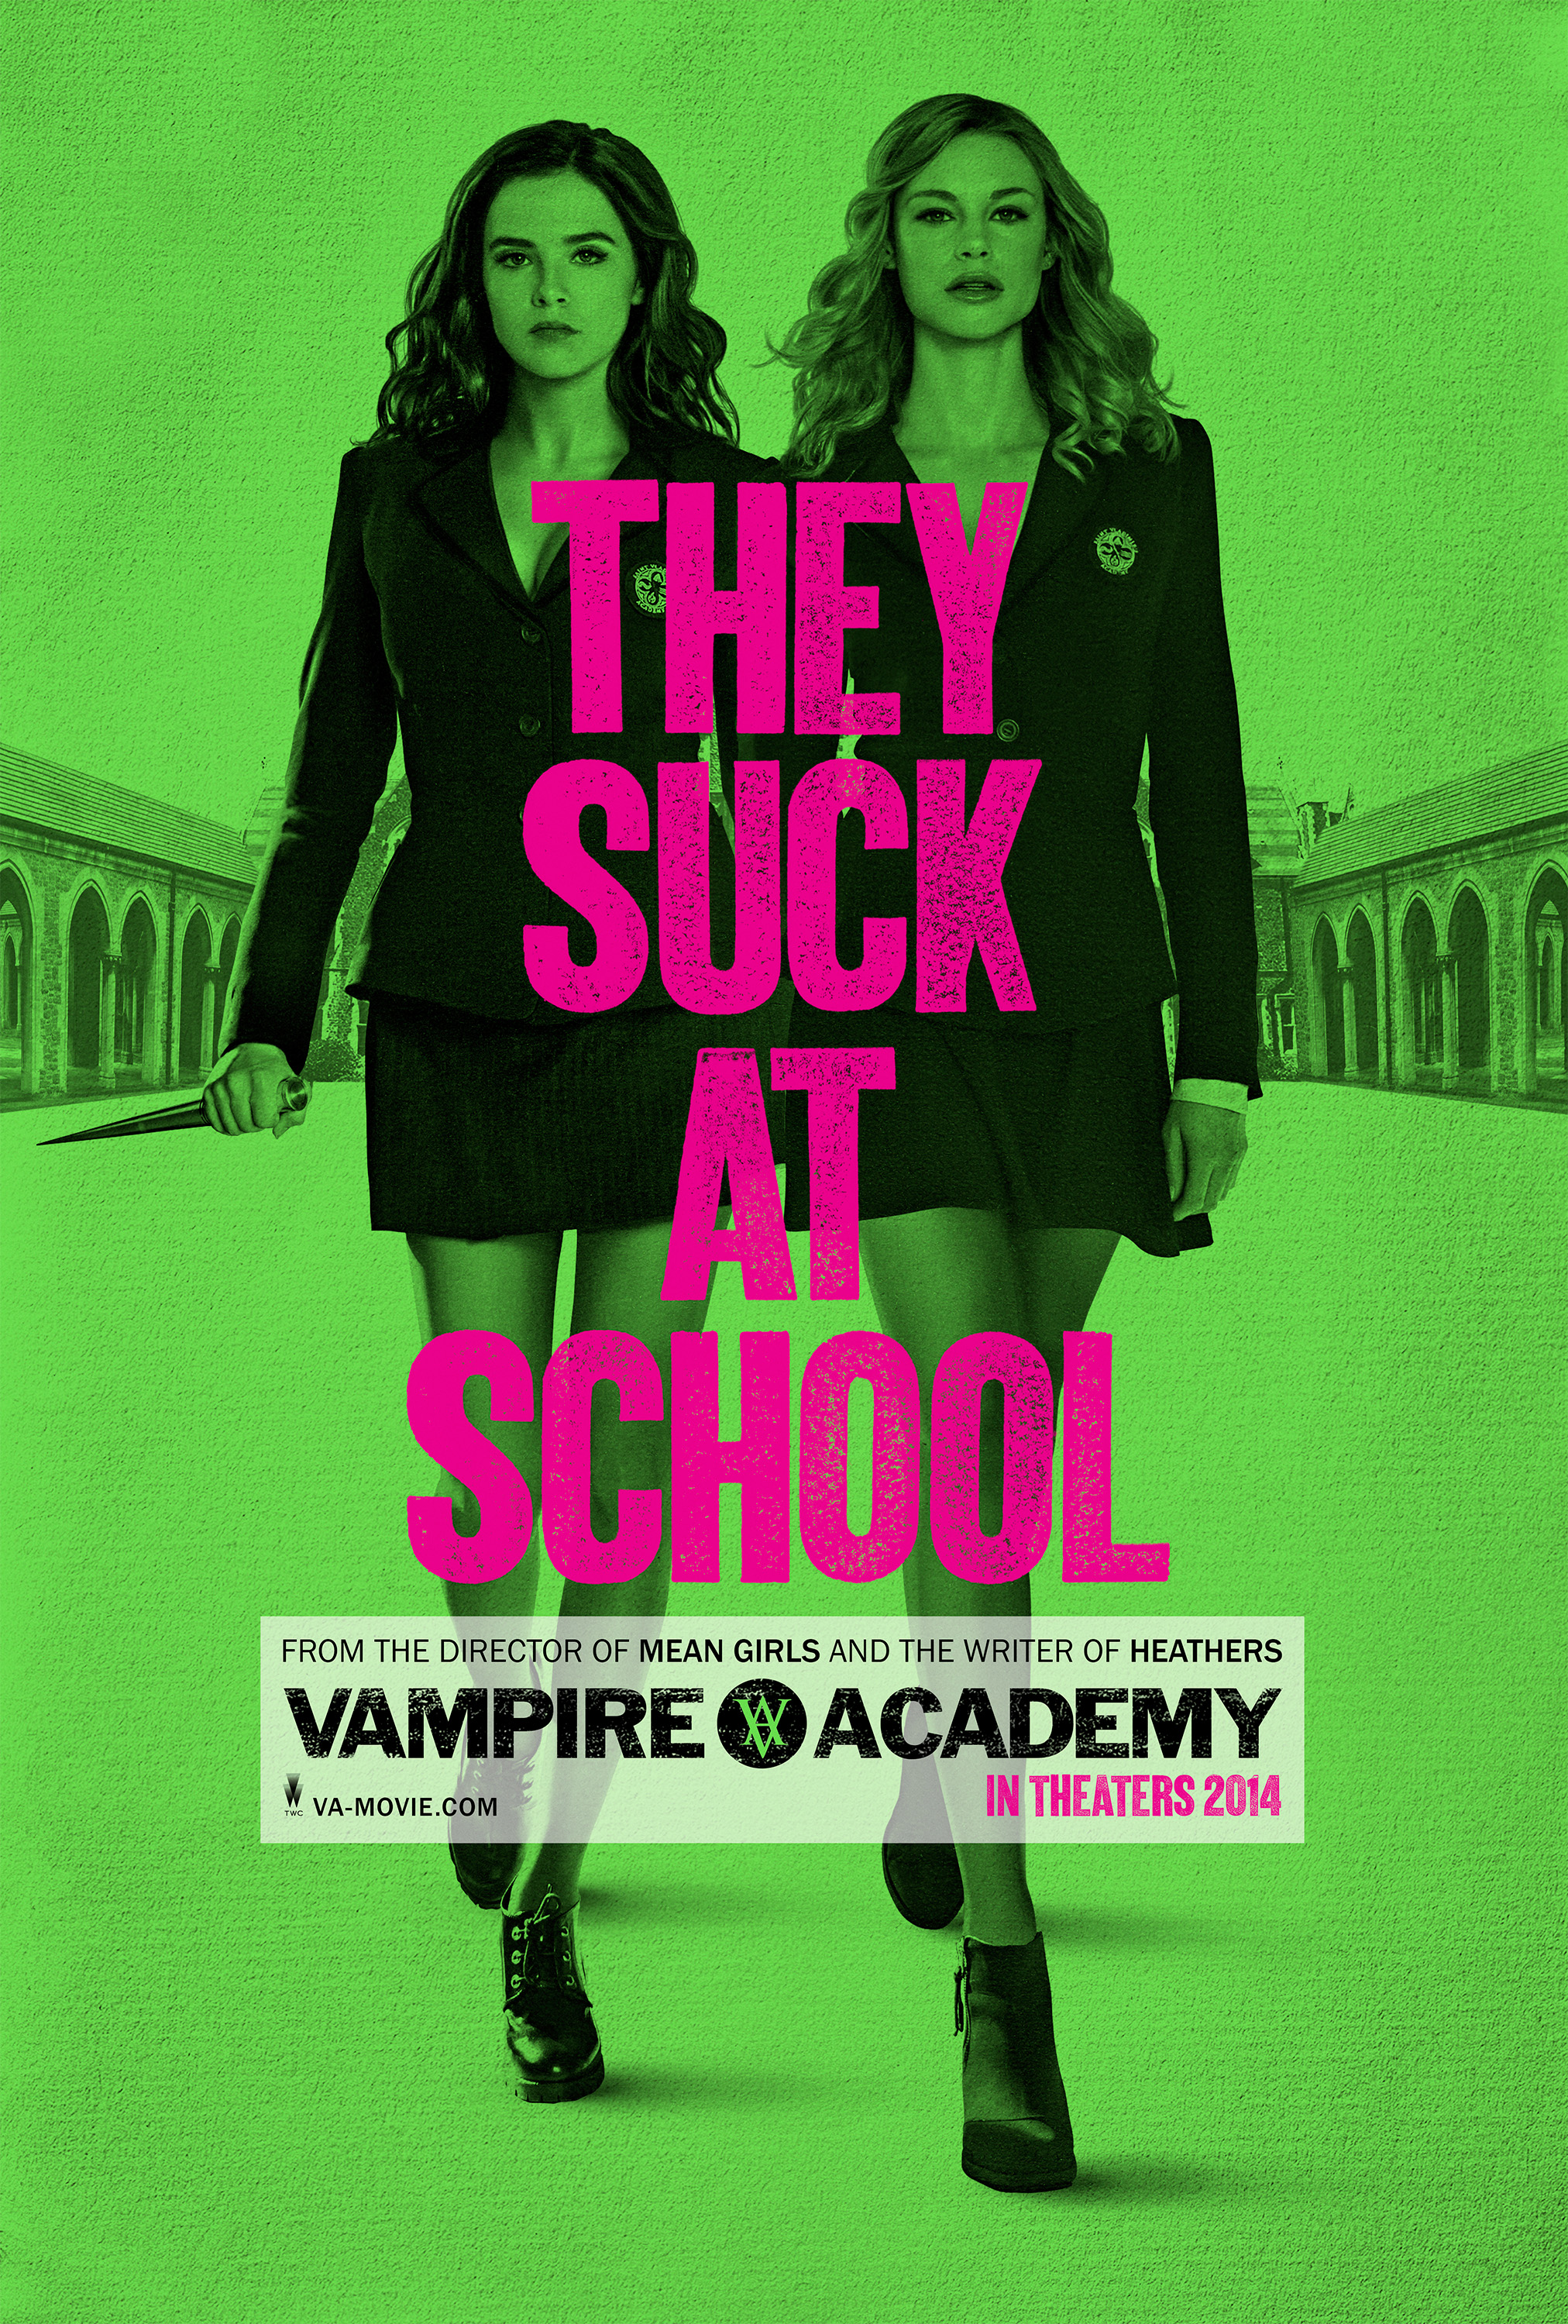 VAMPIRE ACADEMY BLOOD SISTERS-Official Poster Banner PROMO POSTER-14OUTUBRO2013